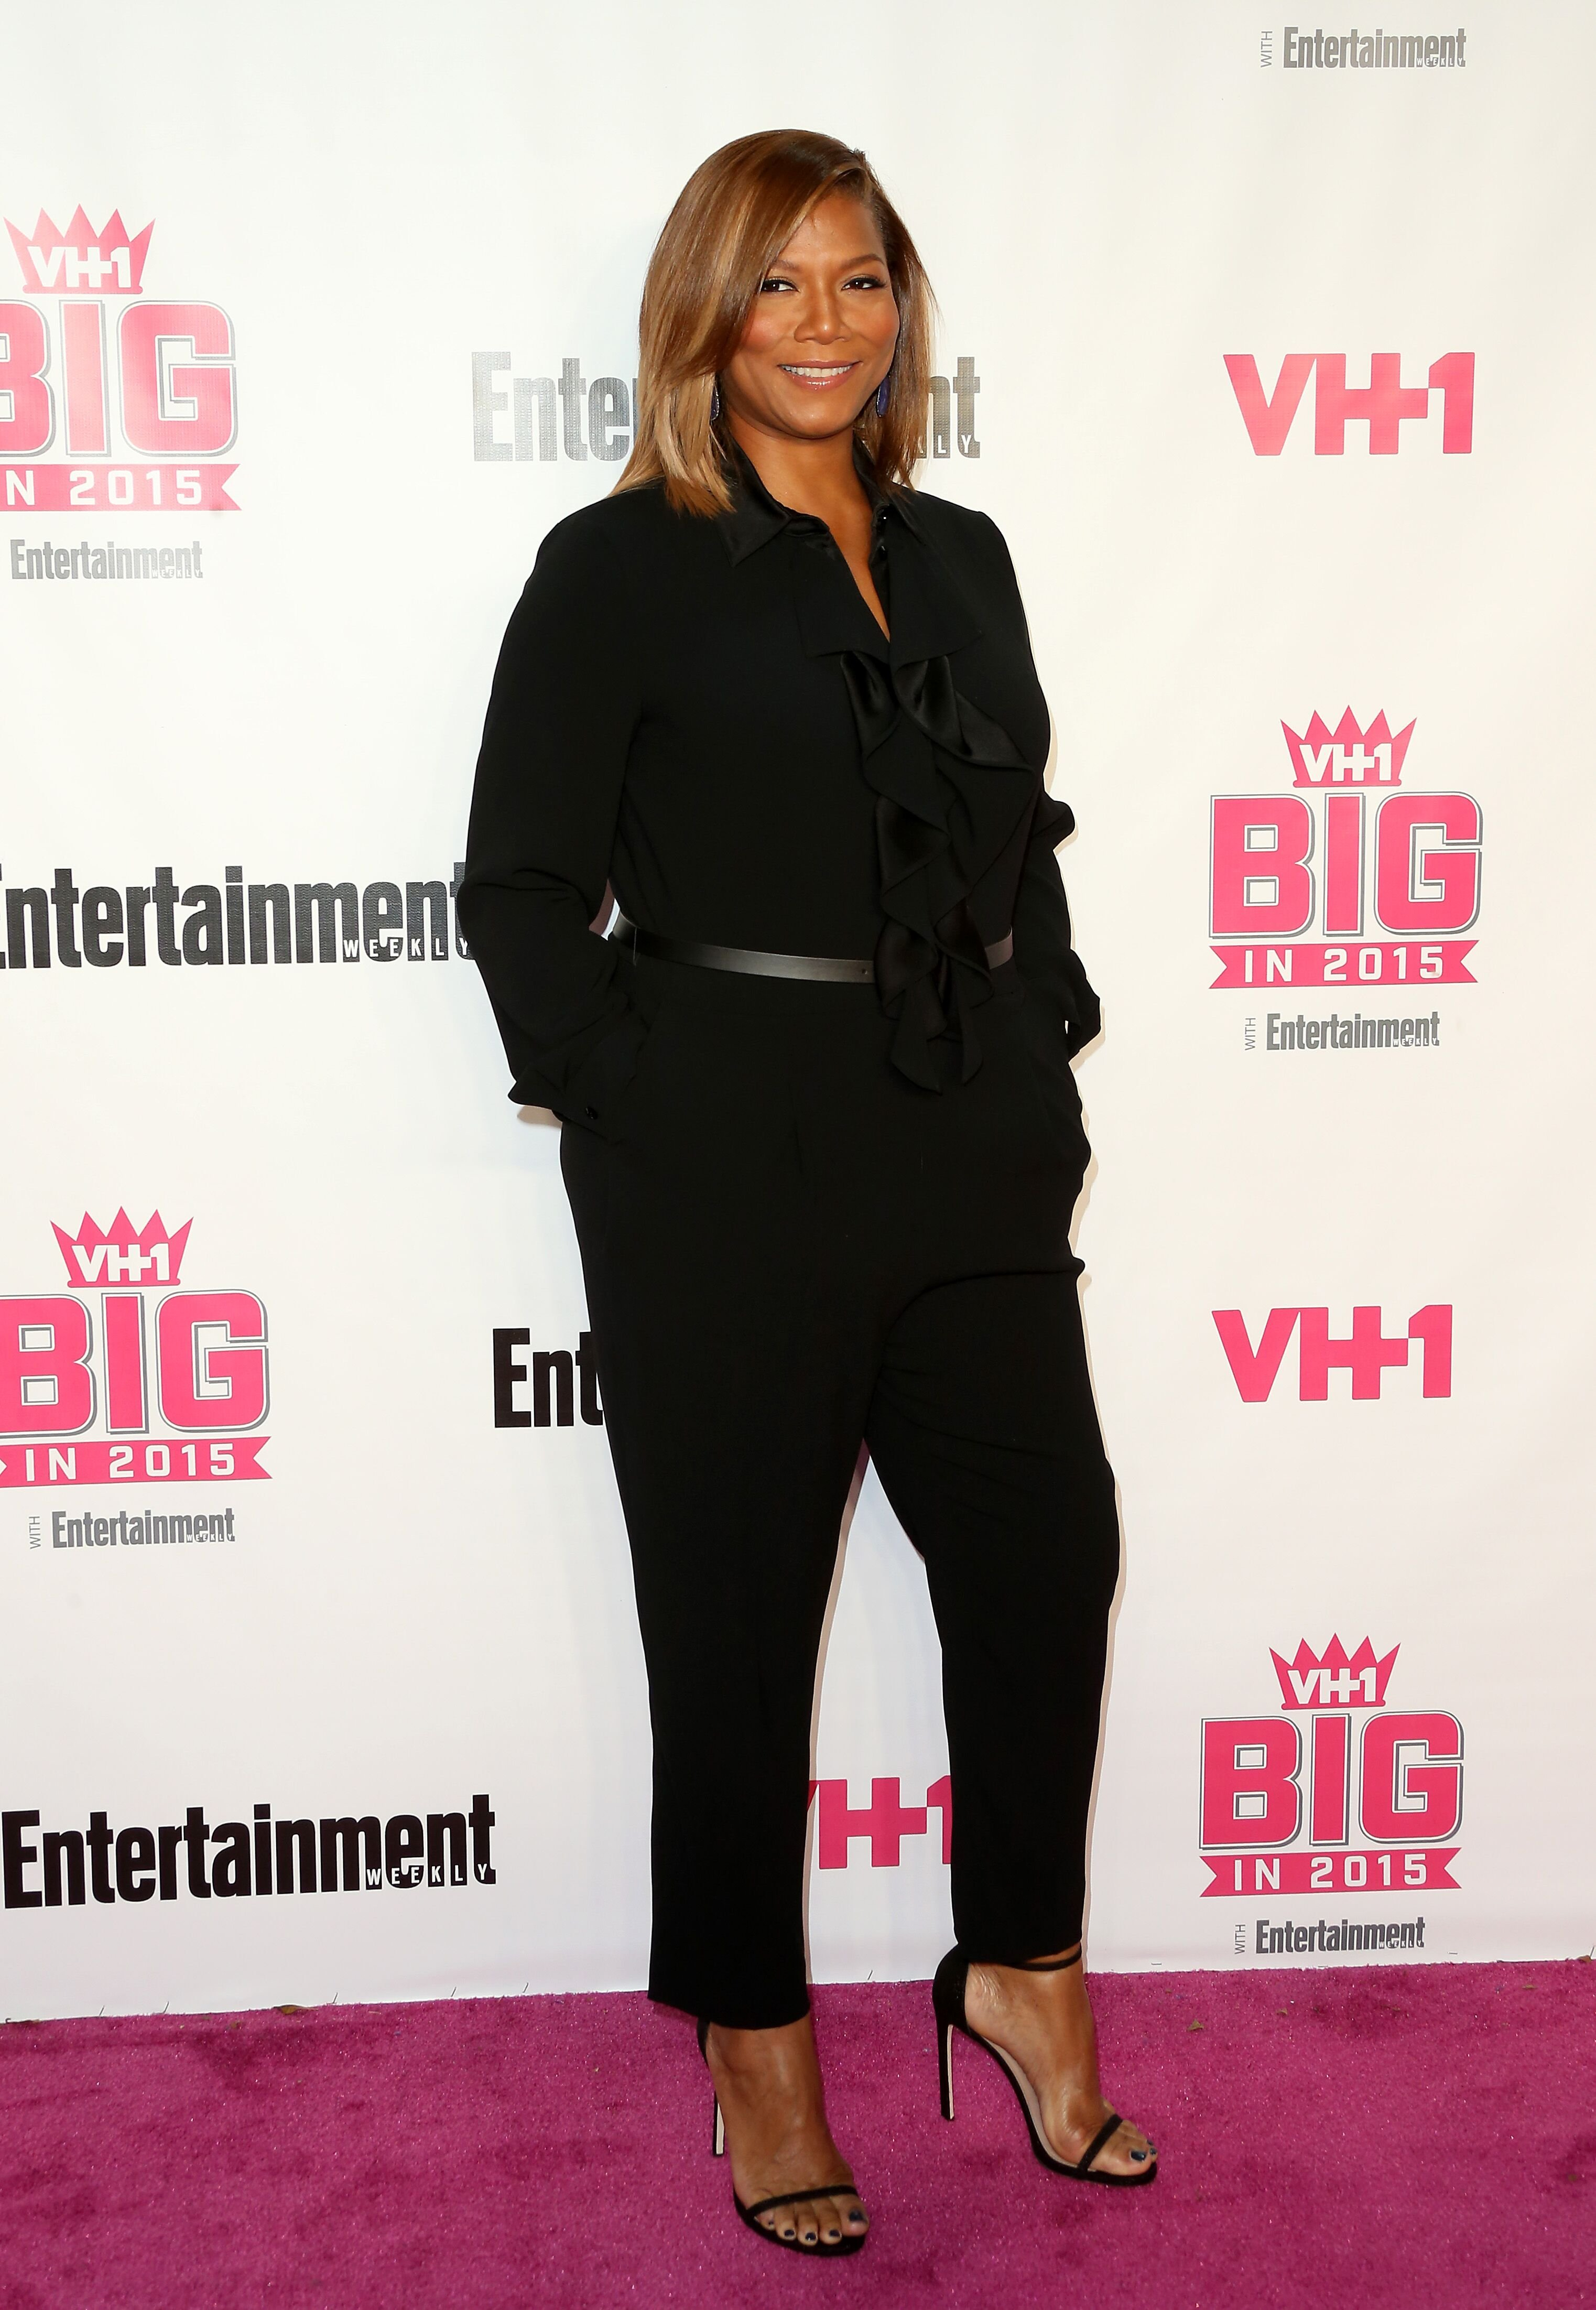 """Actress Queen Latifah at the """"VH1 Big In 2015 With Entertainment Weekly Awards"""" in November 2015 